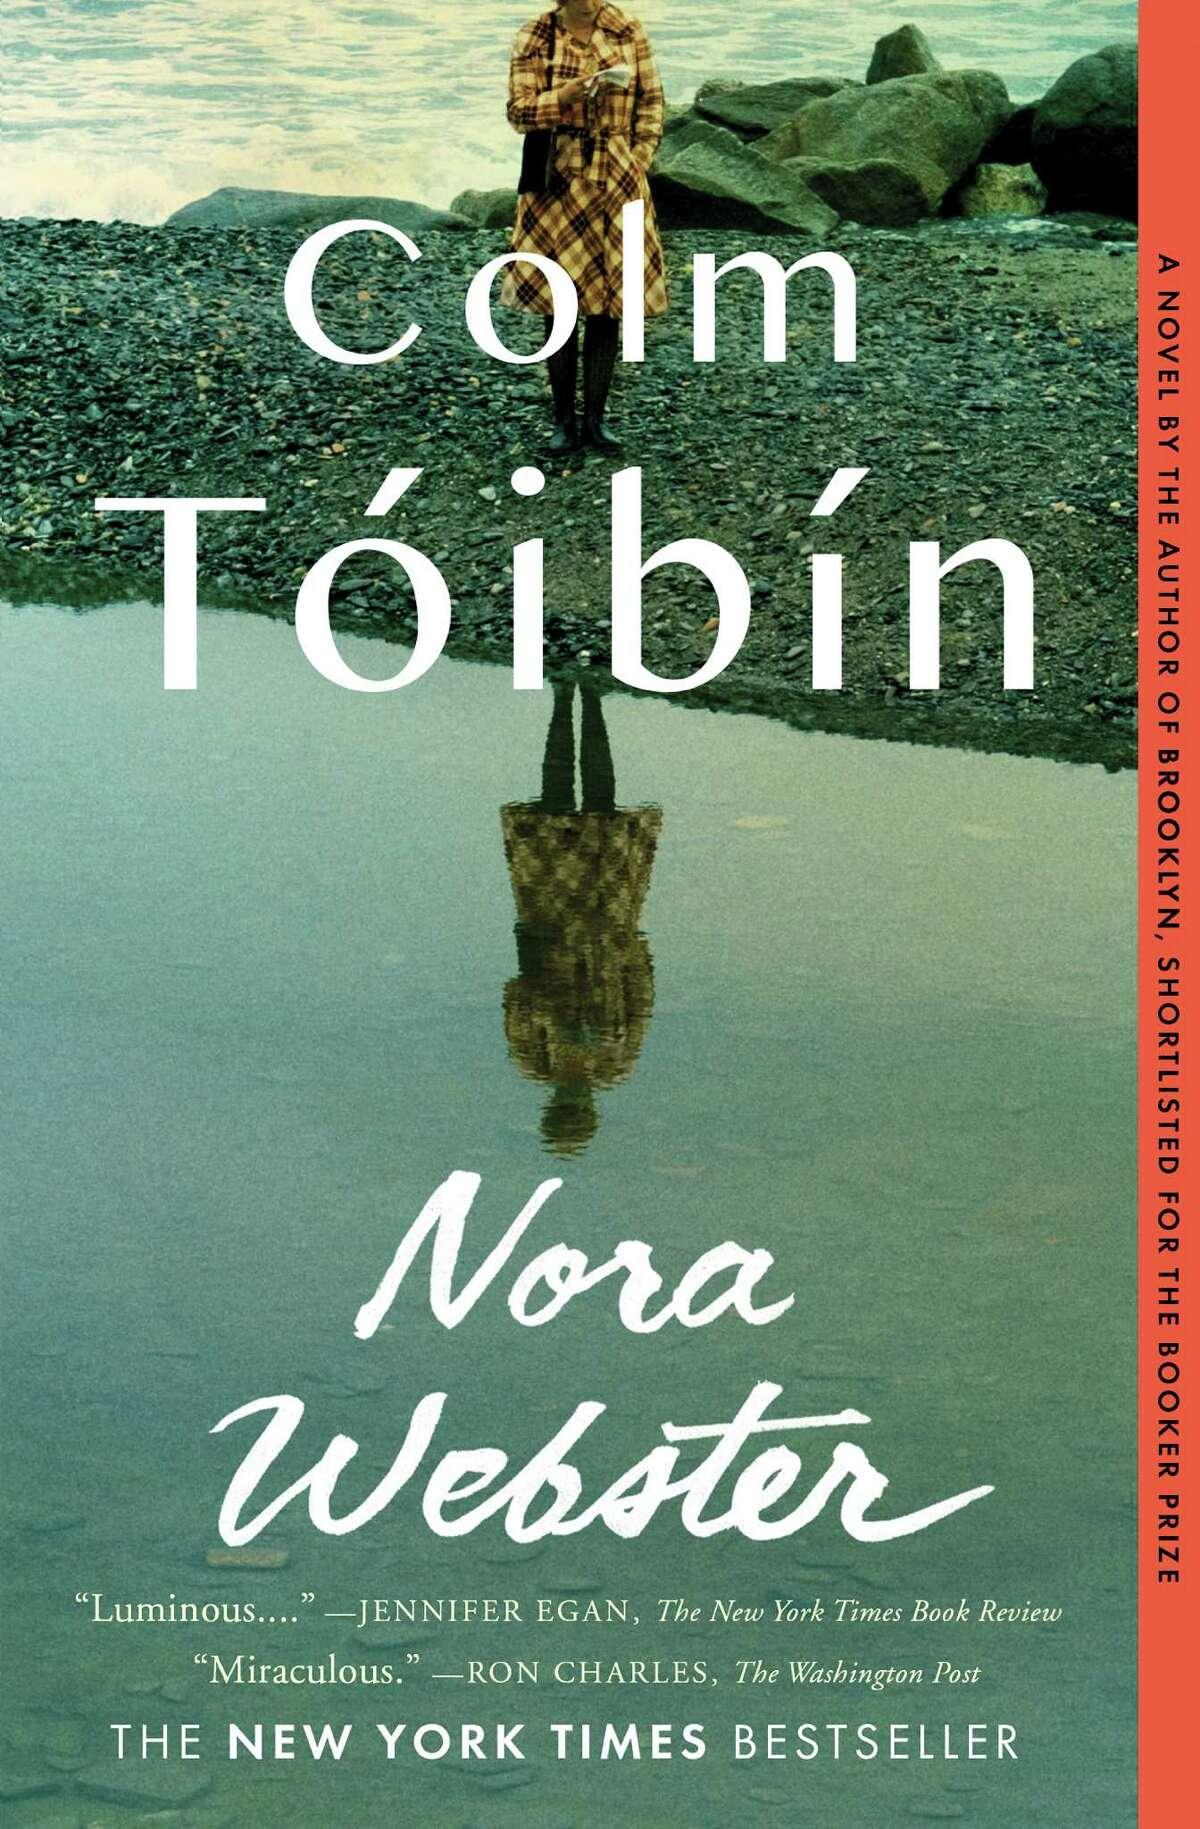 Cover of Colm Toibin's novel,